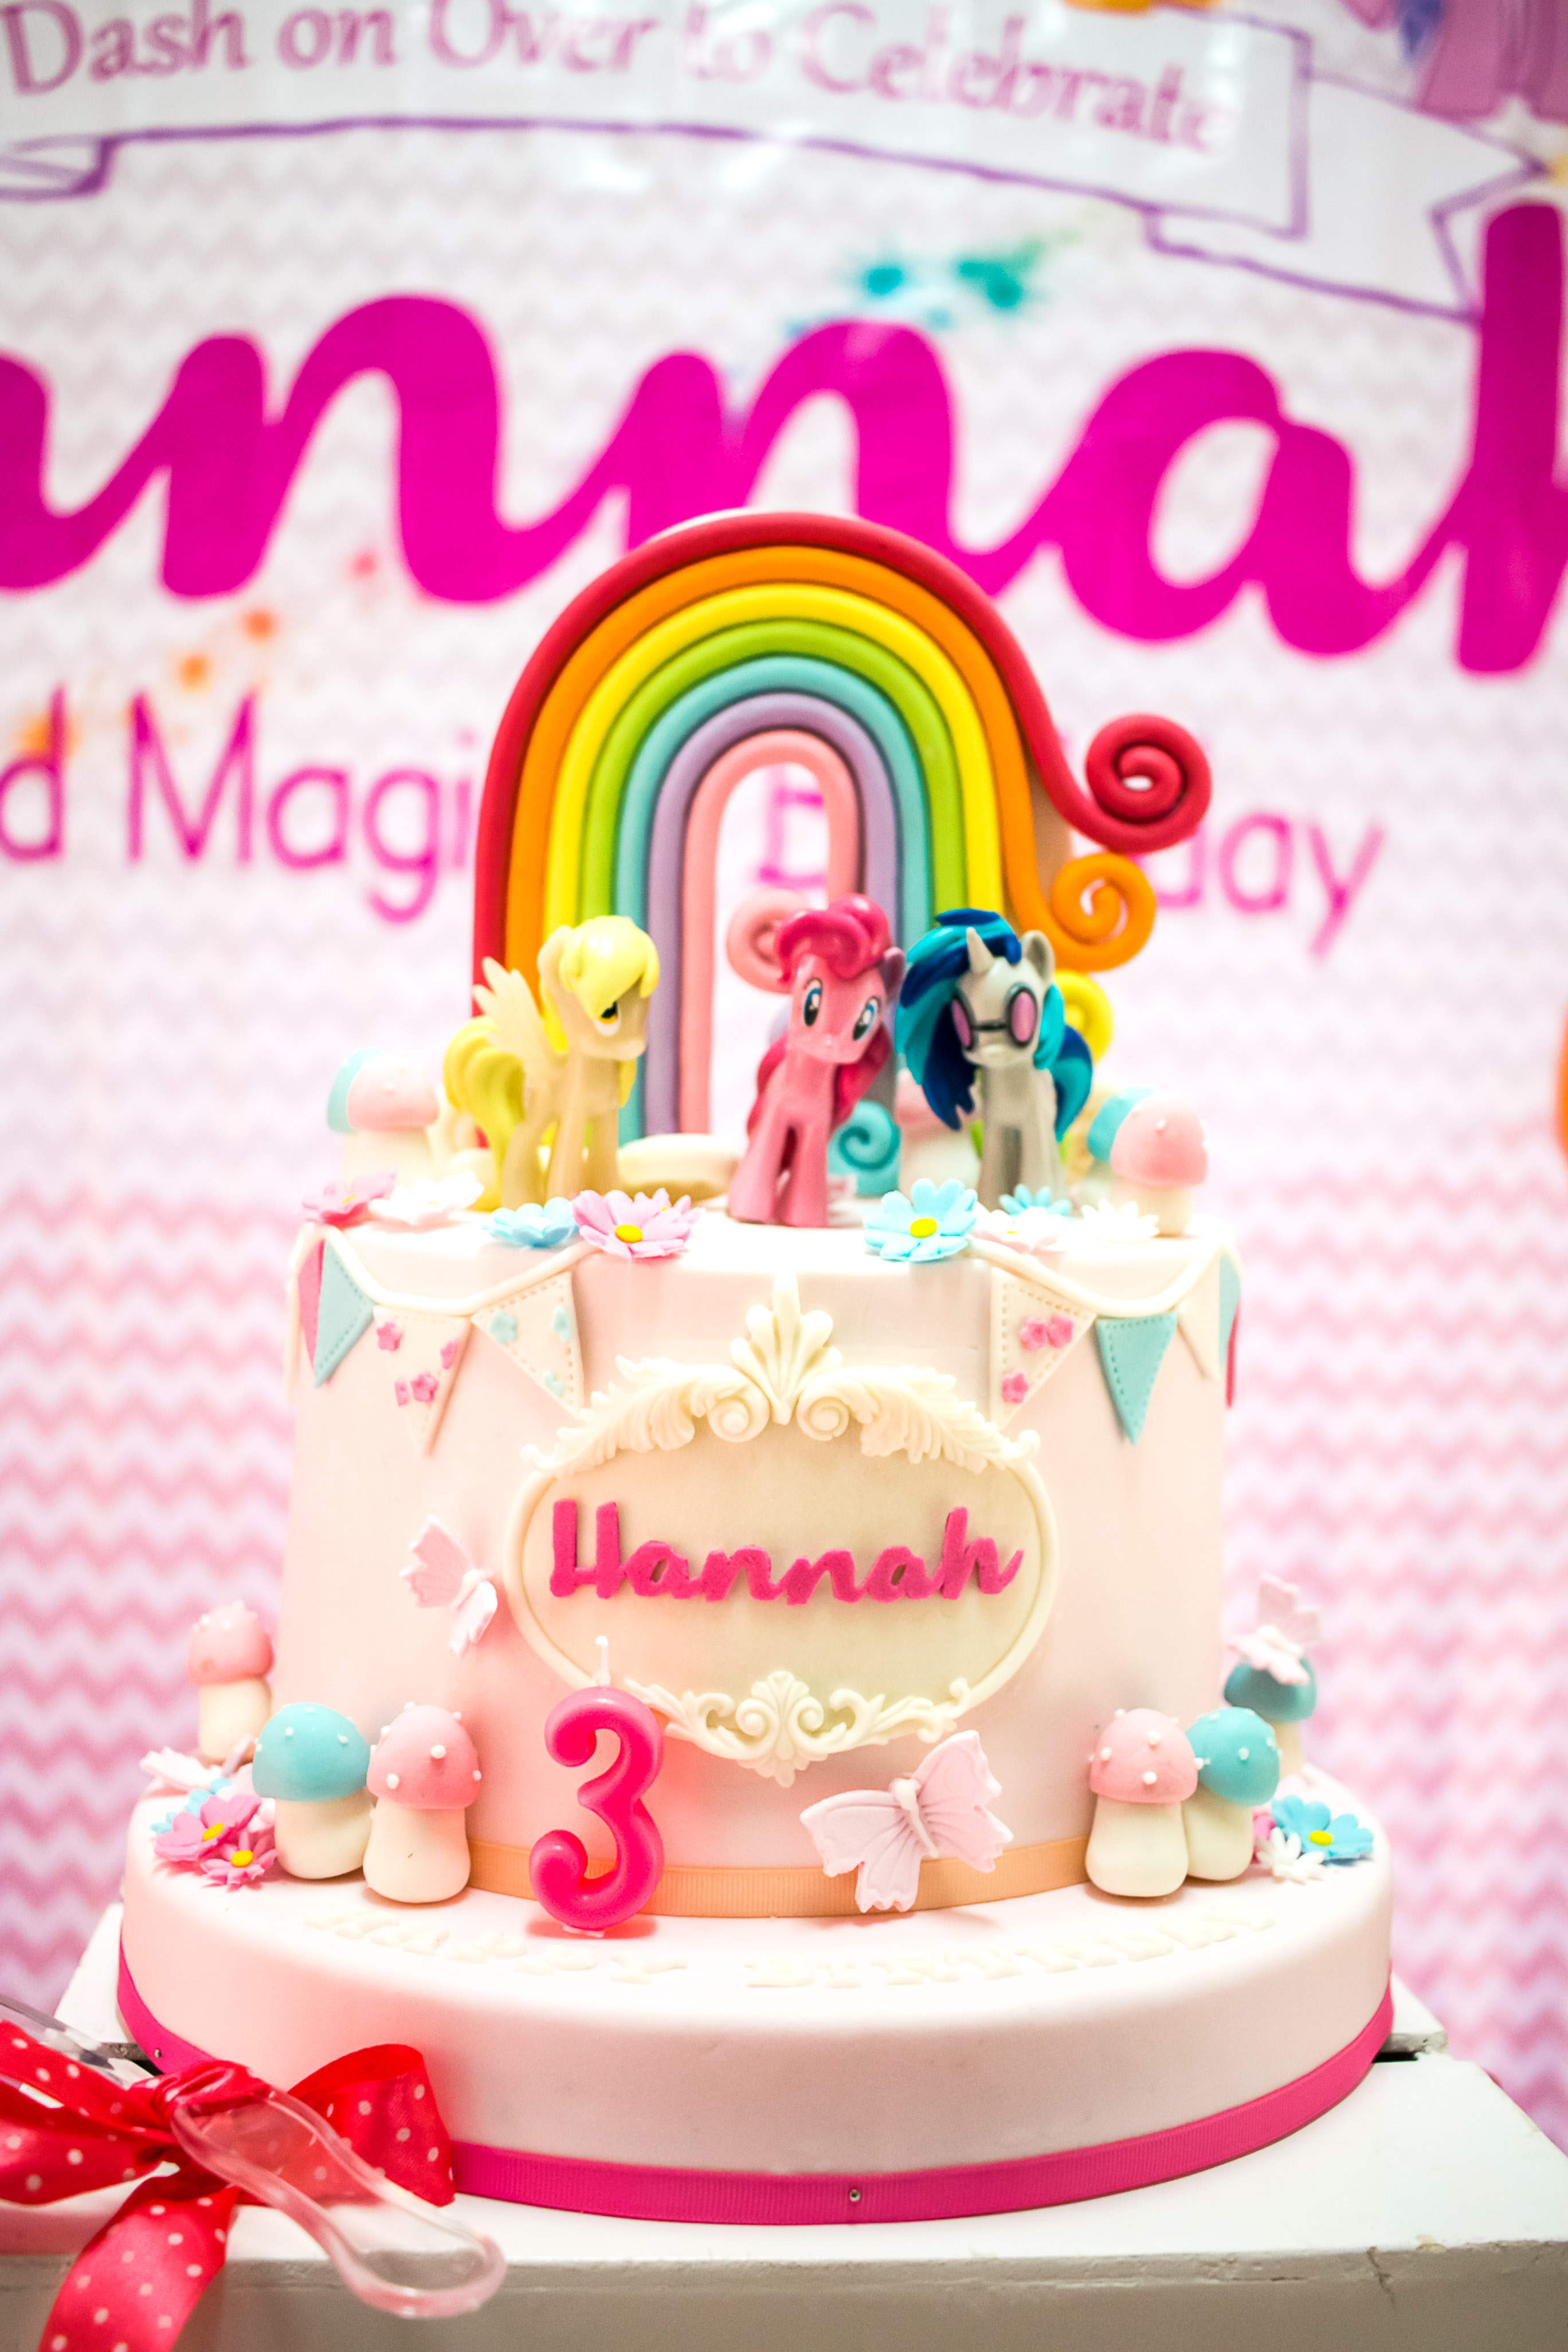 Theme My Little Pony Its More Than Just A Party